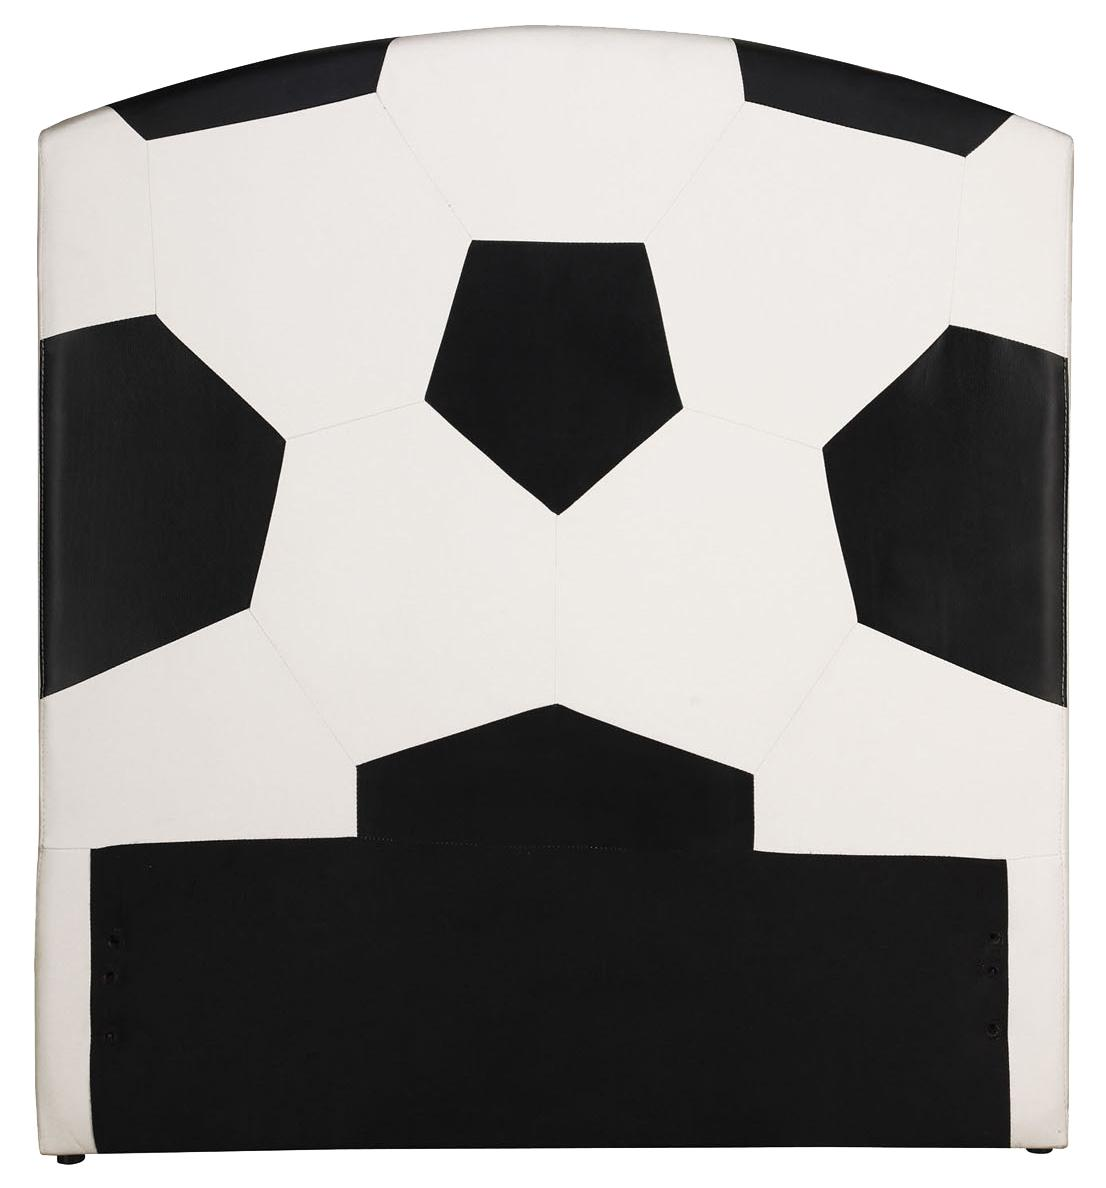 Acme Furniture All Star Soccer Twin Headboard - Item Number: 39040